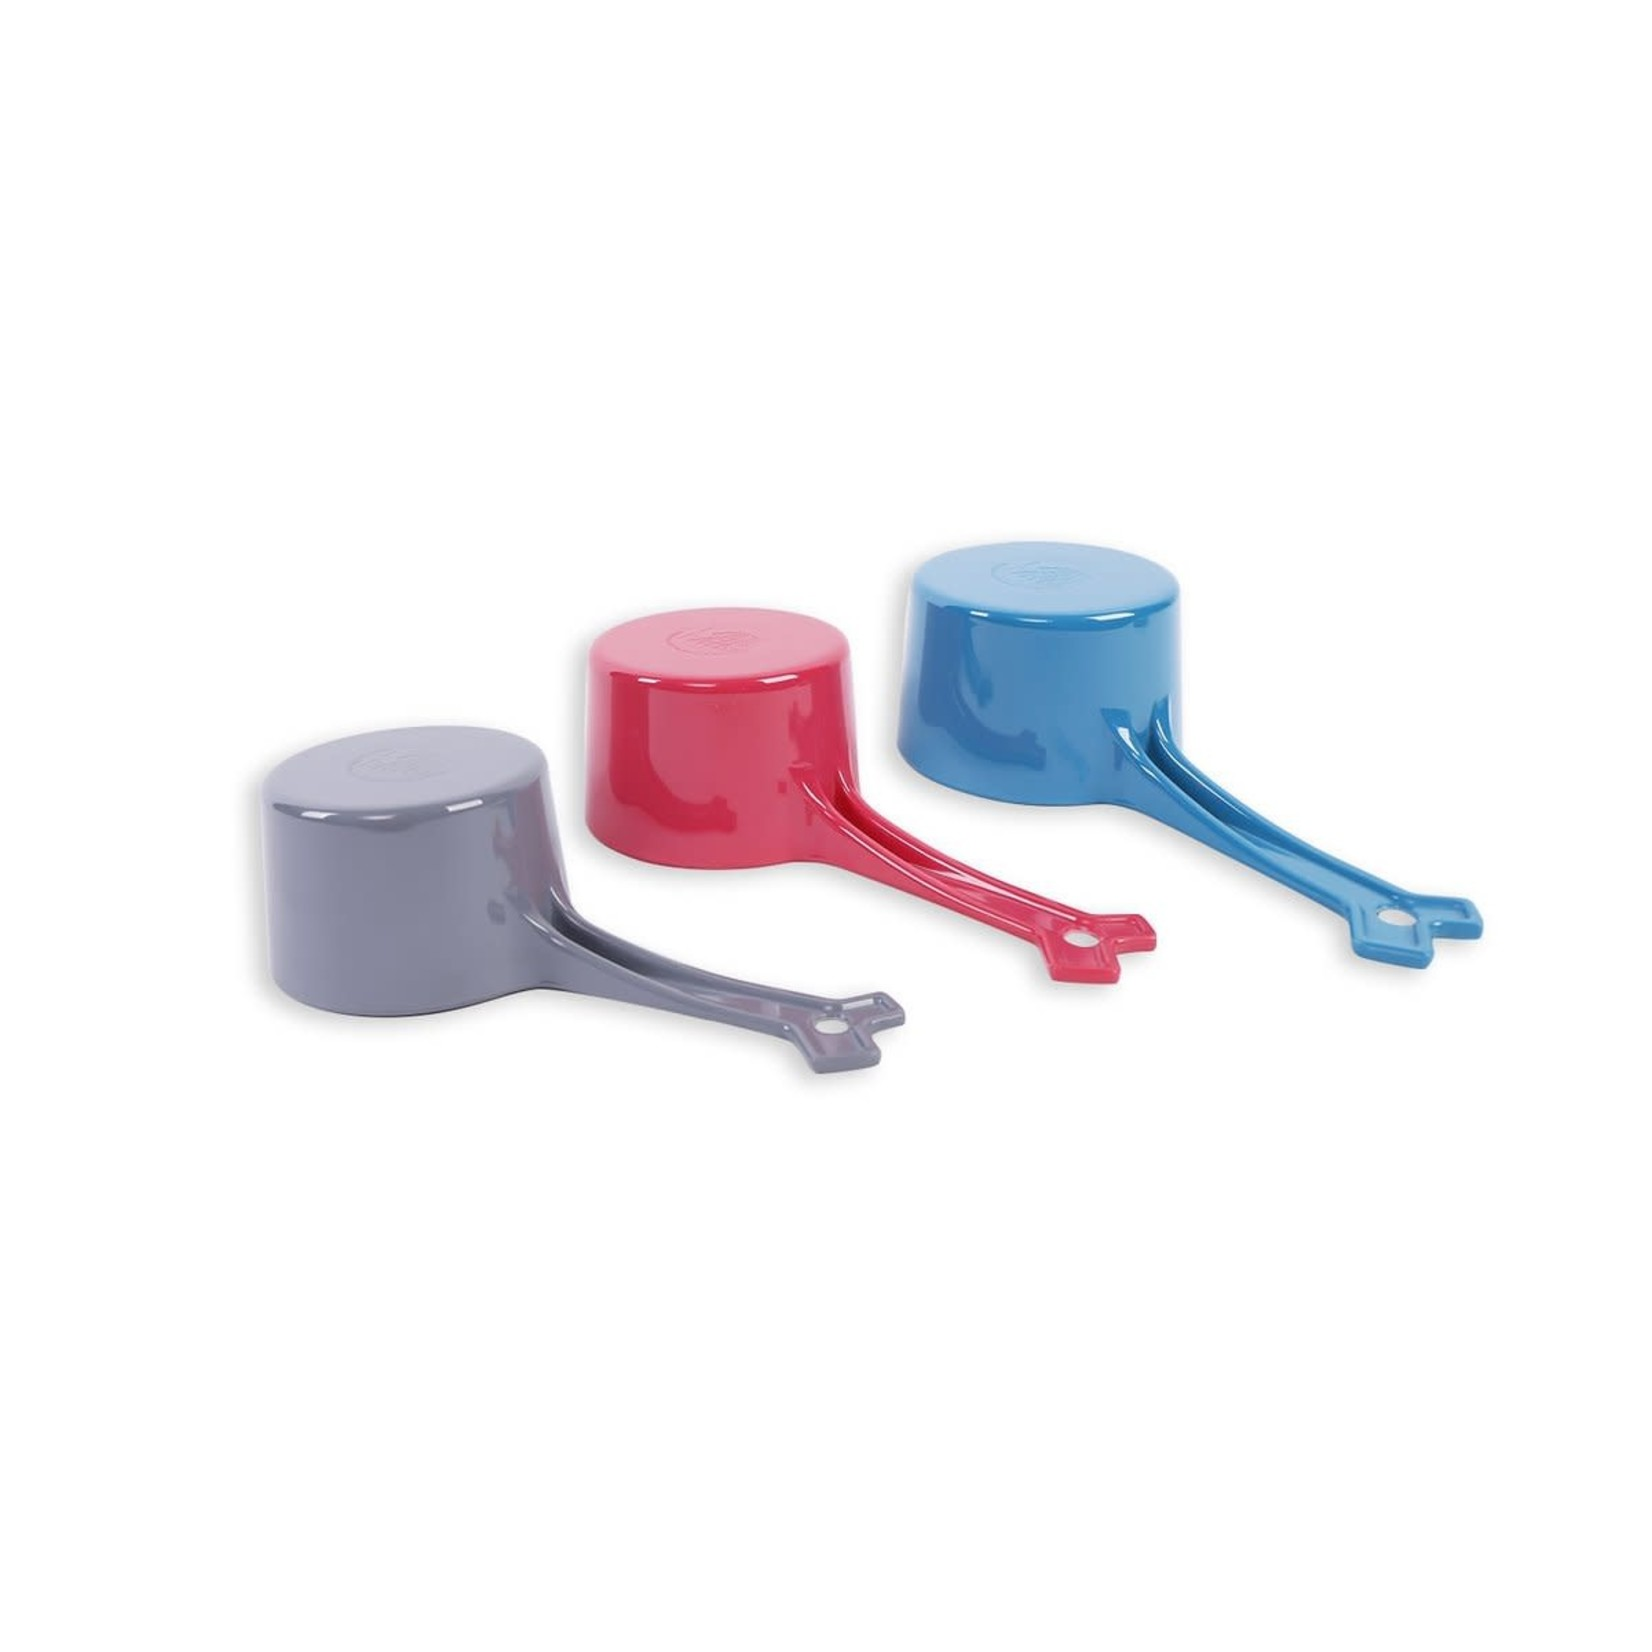 Messy Mutts Messy Mutts Food Scoop 1 CUP Grey